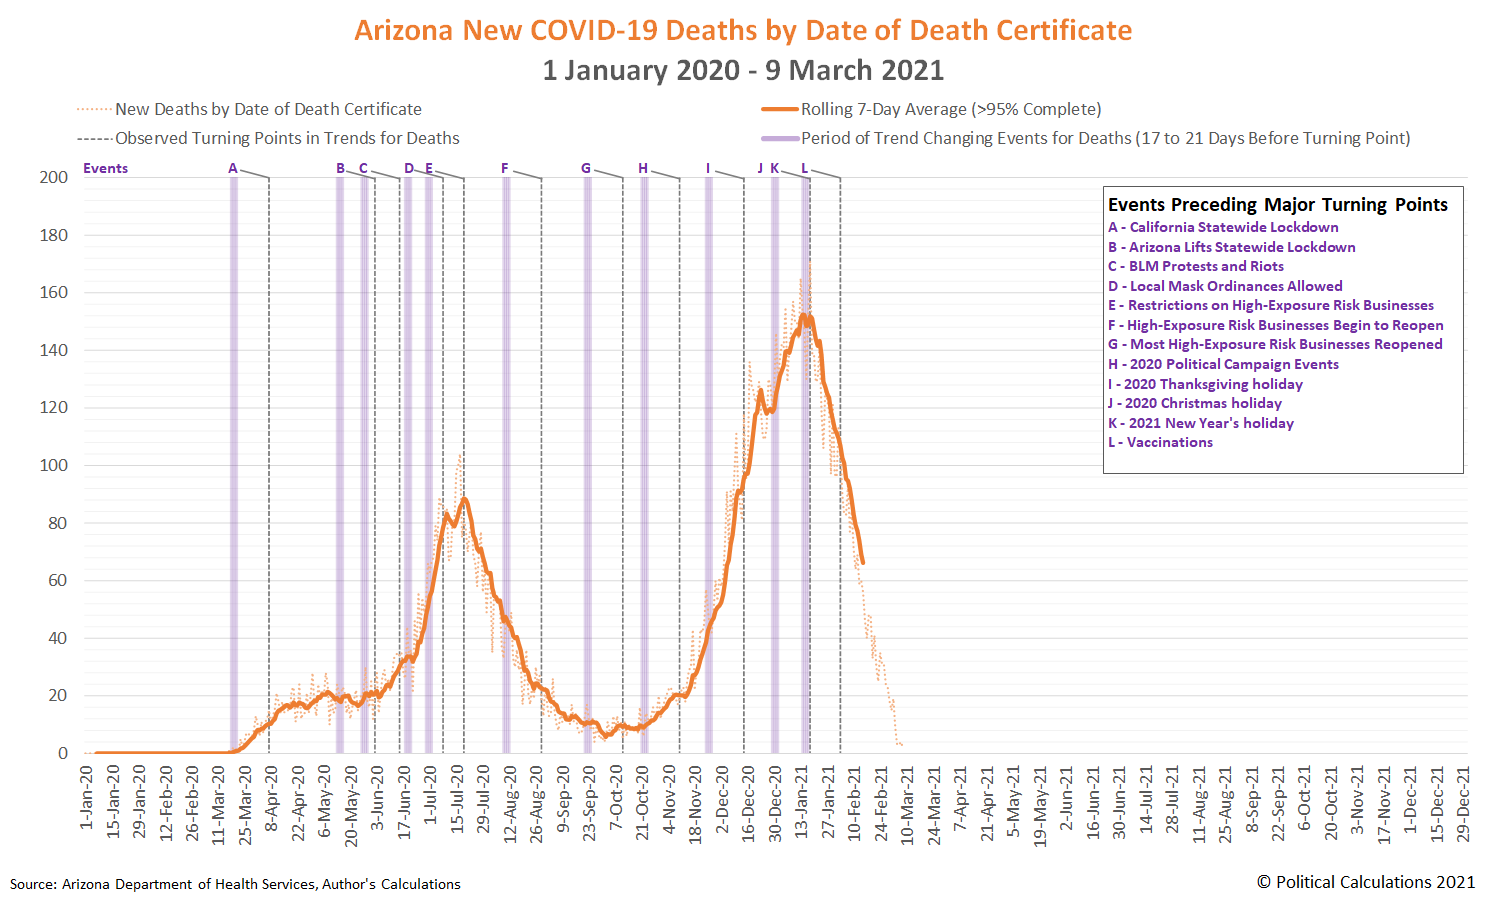 Arizona New COVID-19 Deaths by Date of Death Certificate, 1 January 2020 - 9 March 2021